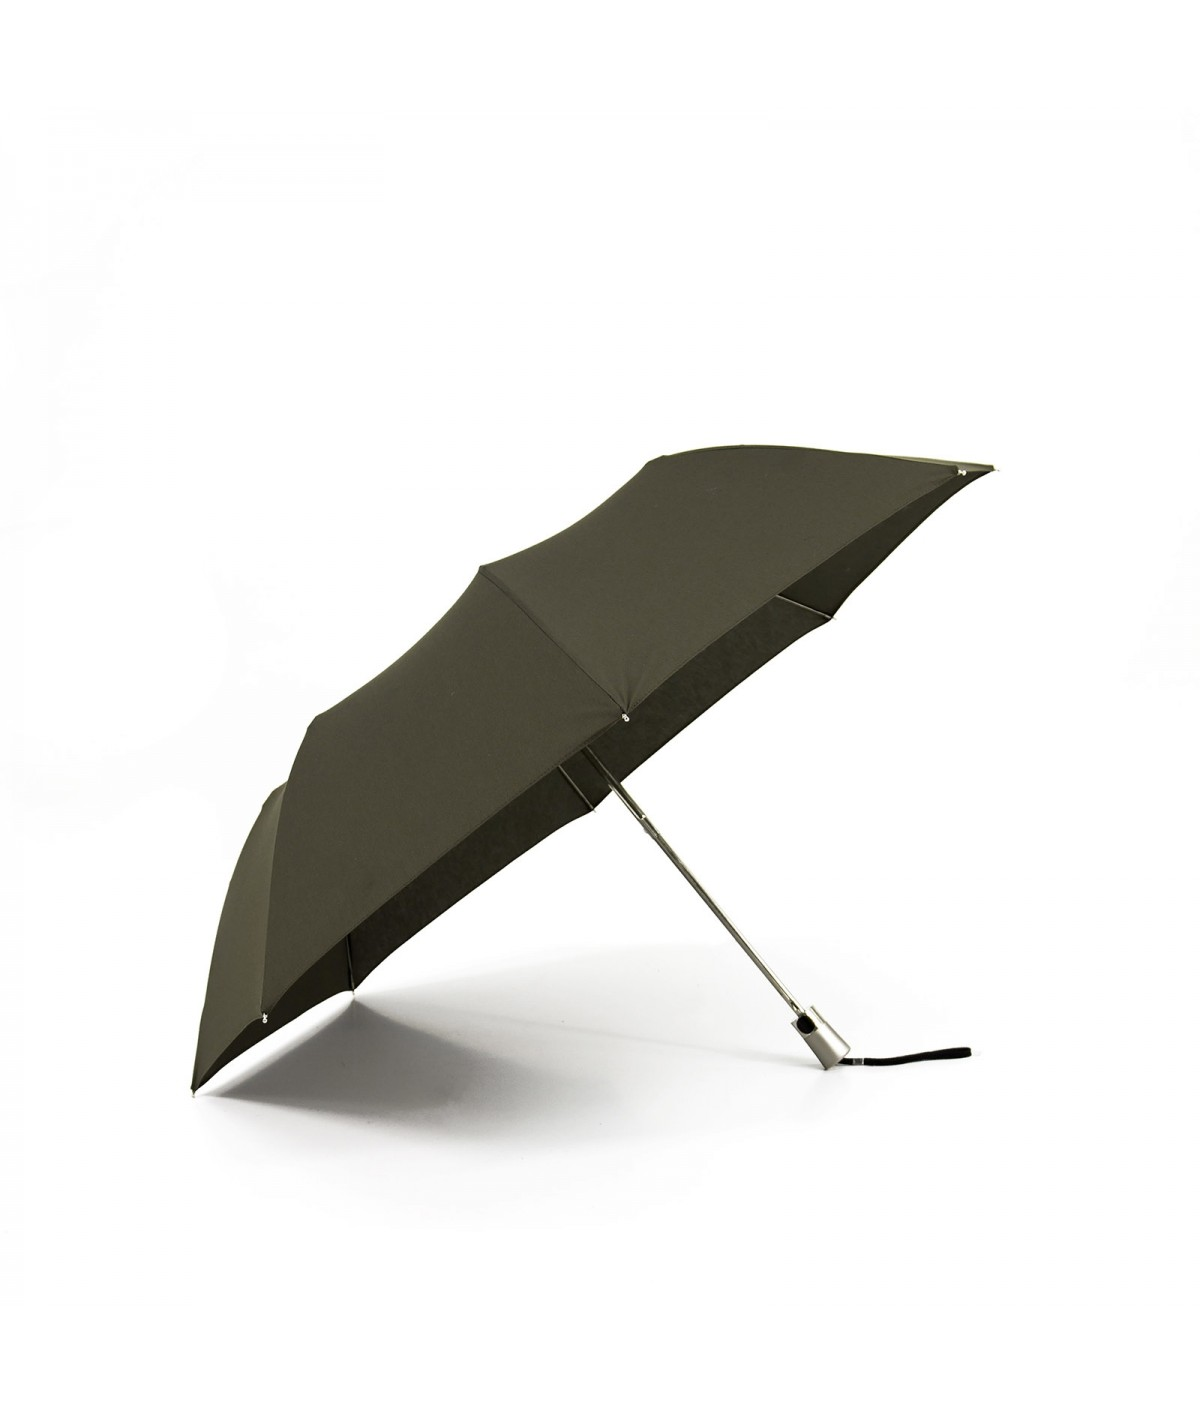 "→ Umbrella-Parasol - Limited Edition ""The United"" - Khaki handcrafted in France by Maison Pierre Vaux"